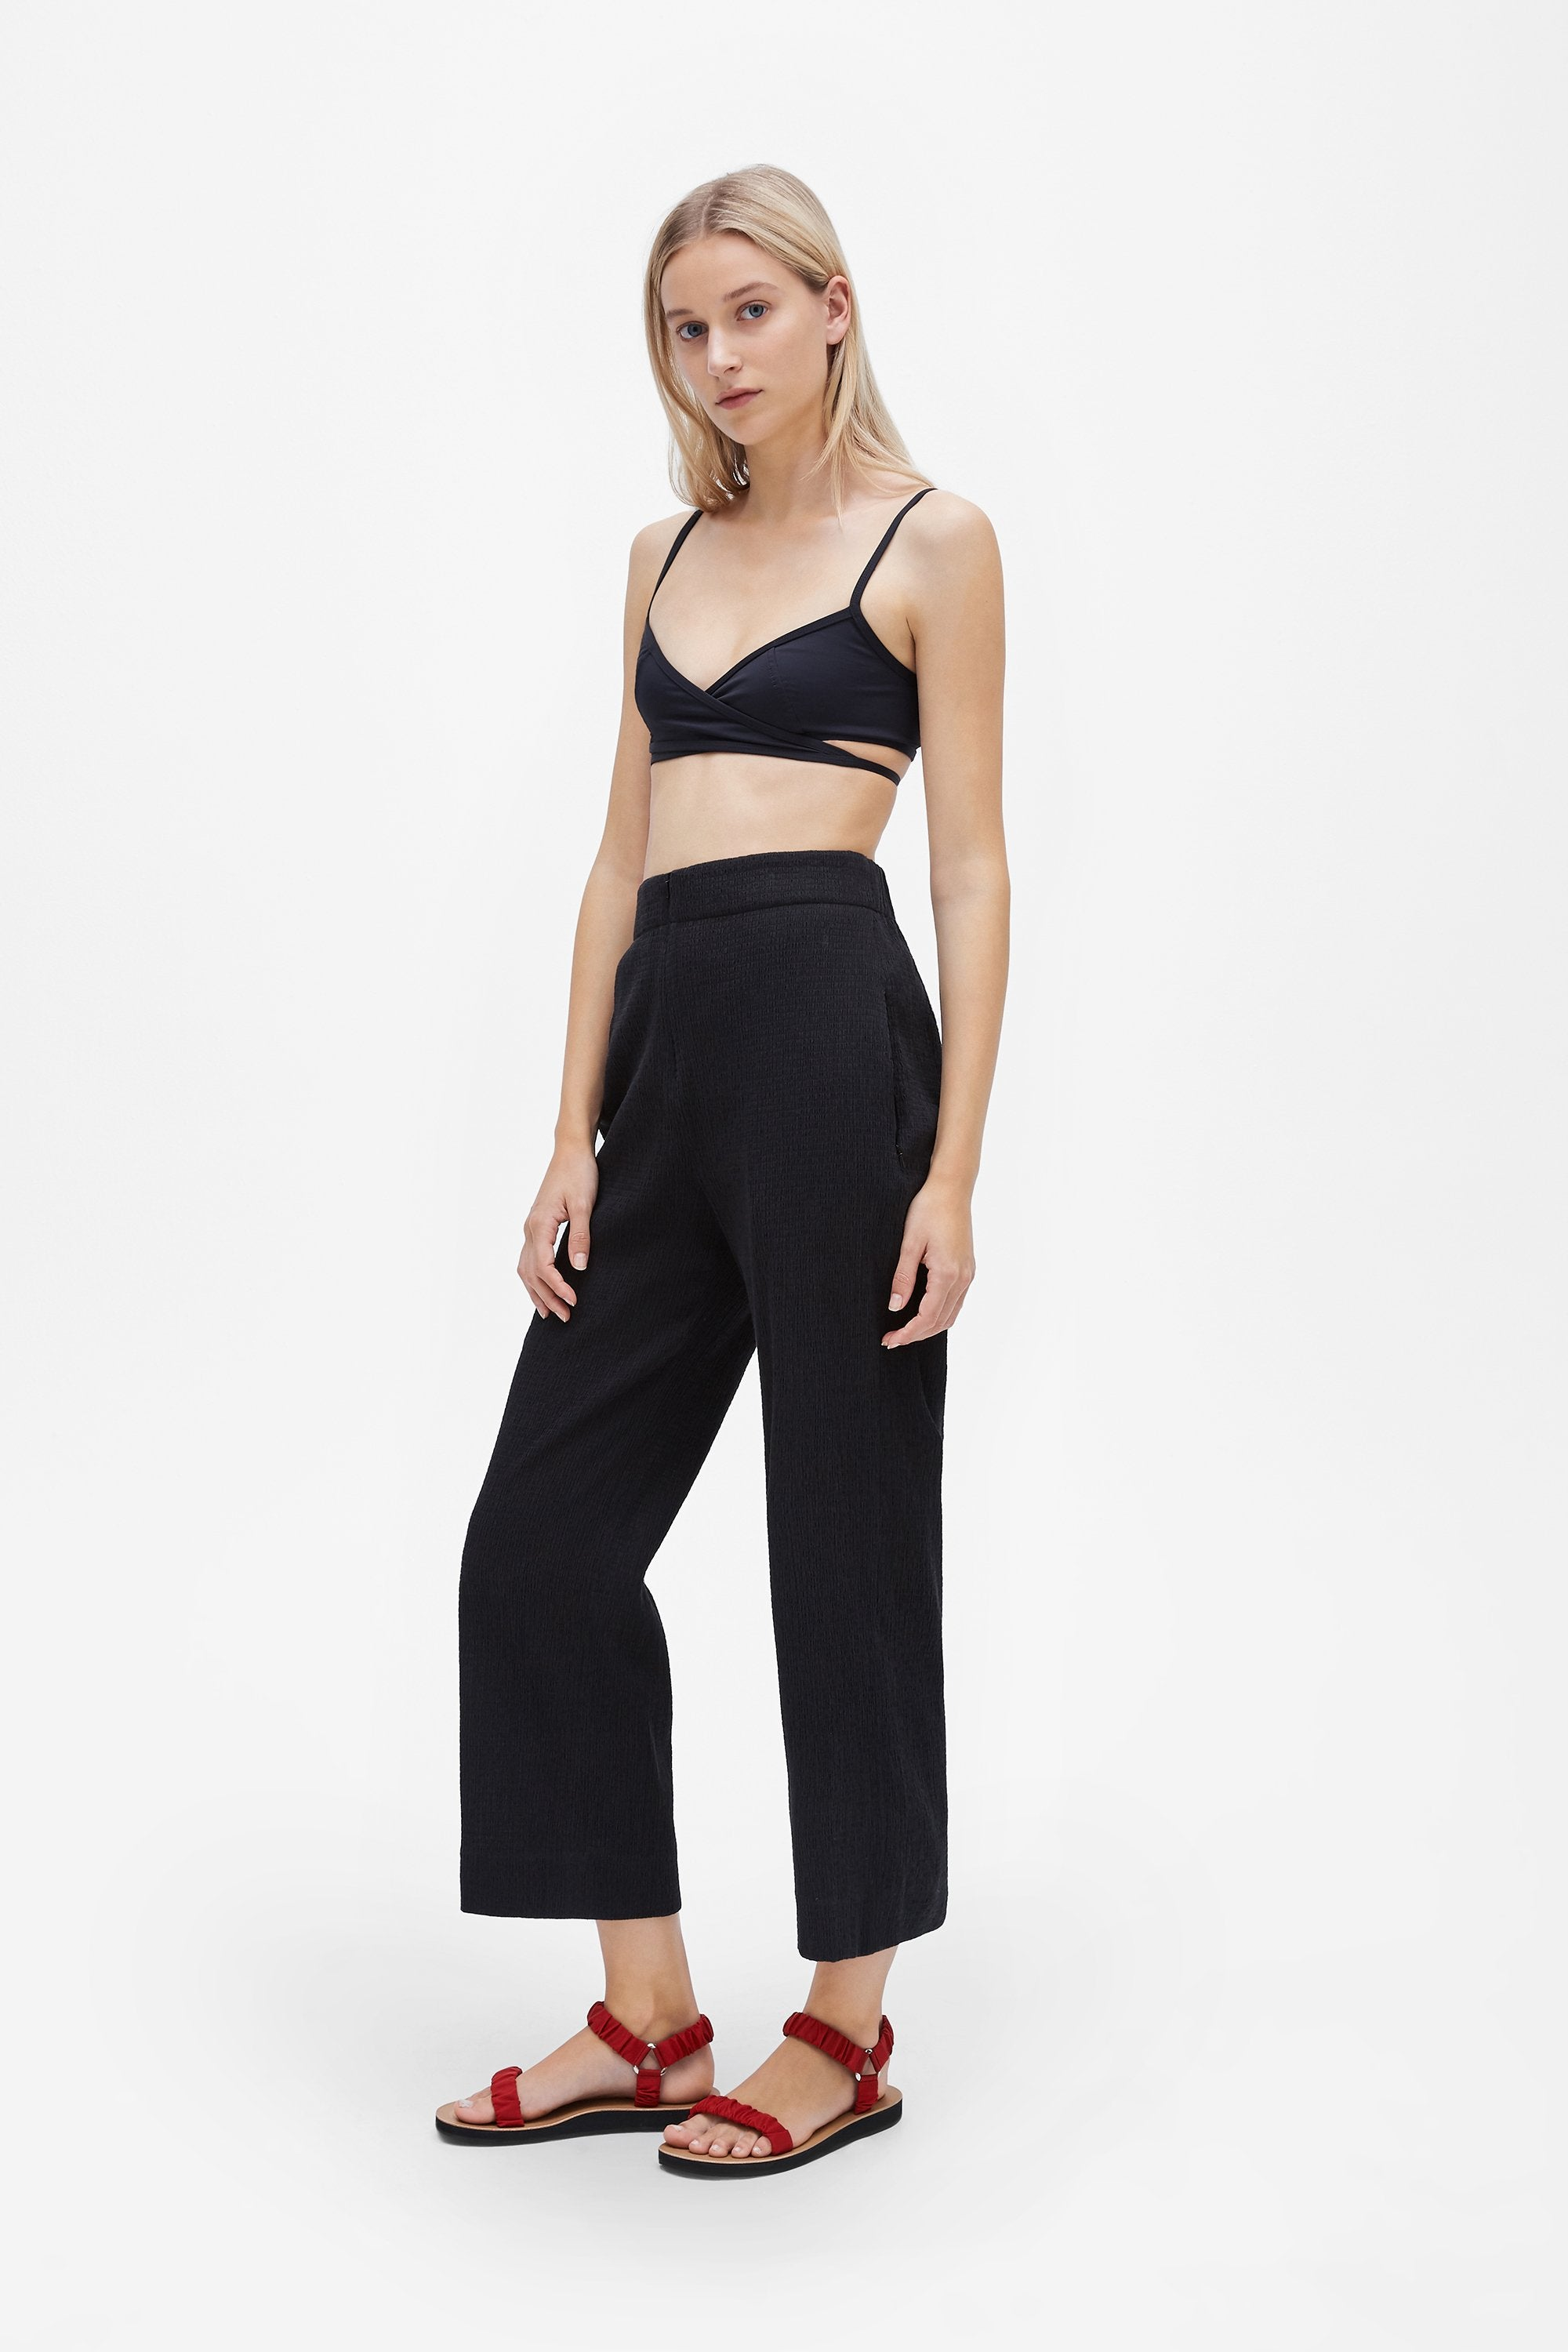 Invisible wide-leg trousers - Shirred voile - Black - Resortwear trouser - Her Line